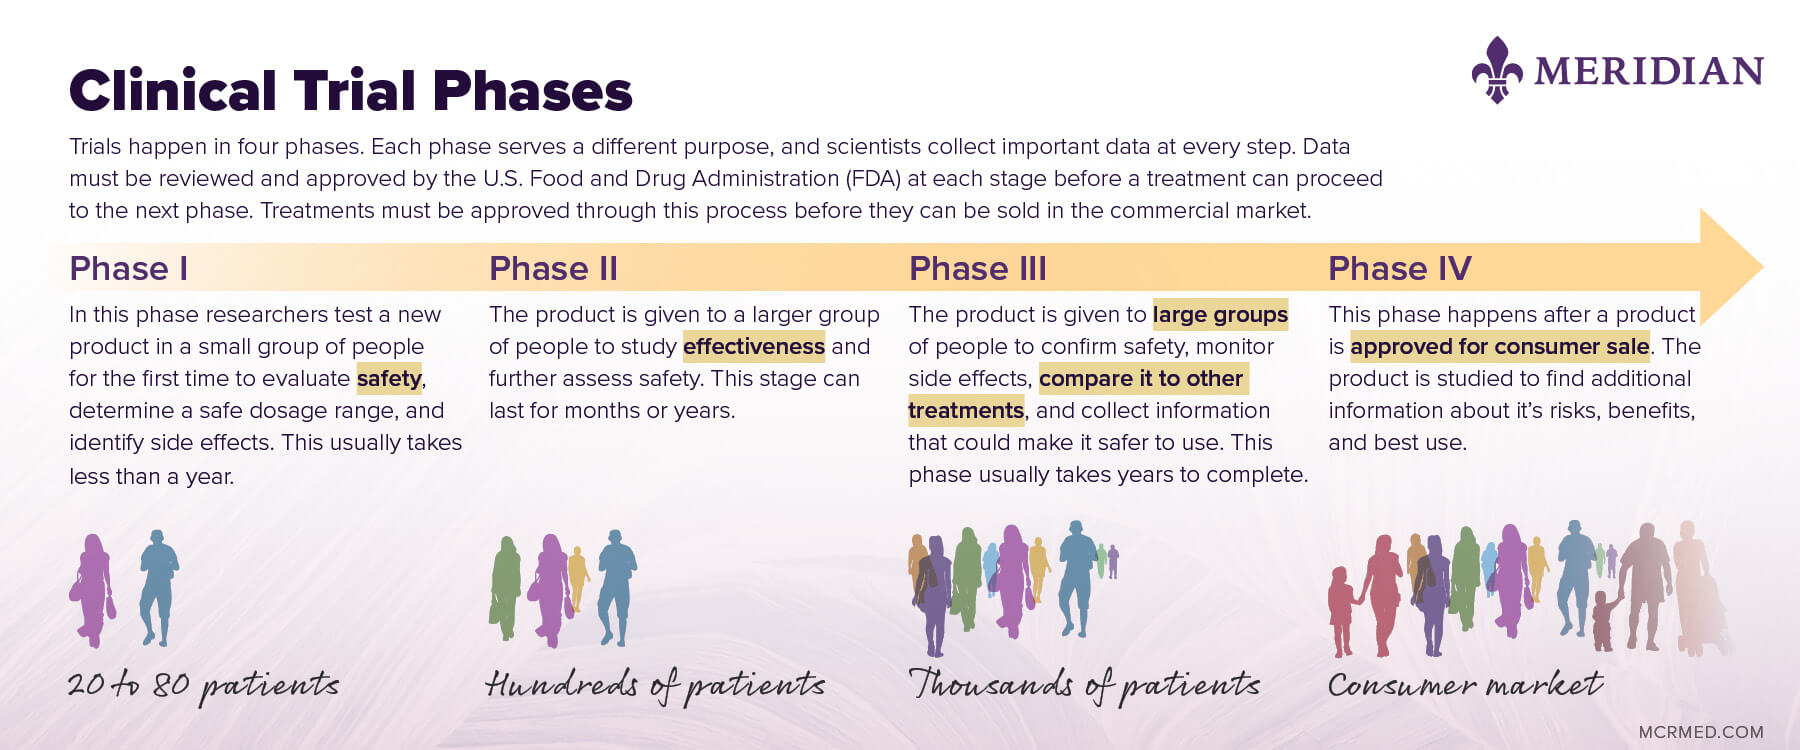 Meridian Clinical Trial Process Infographic